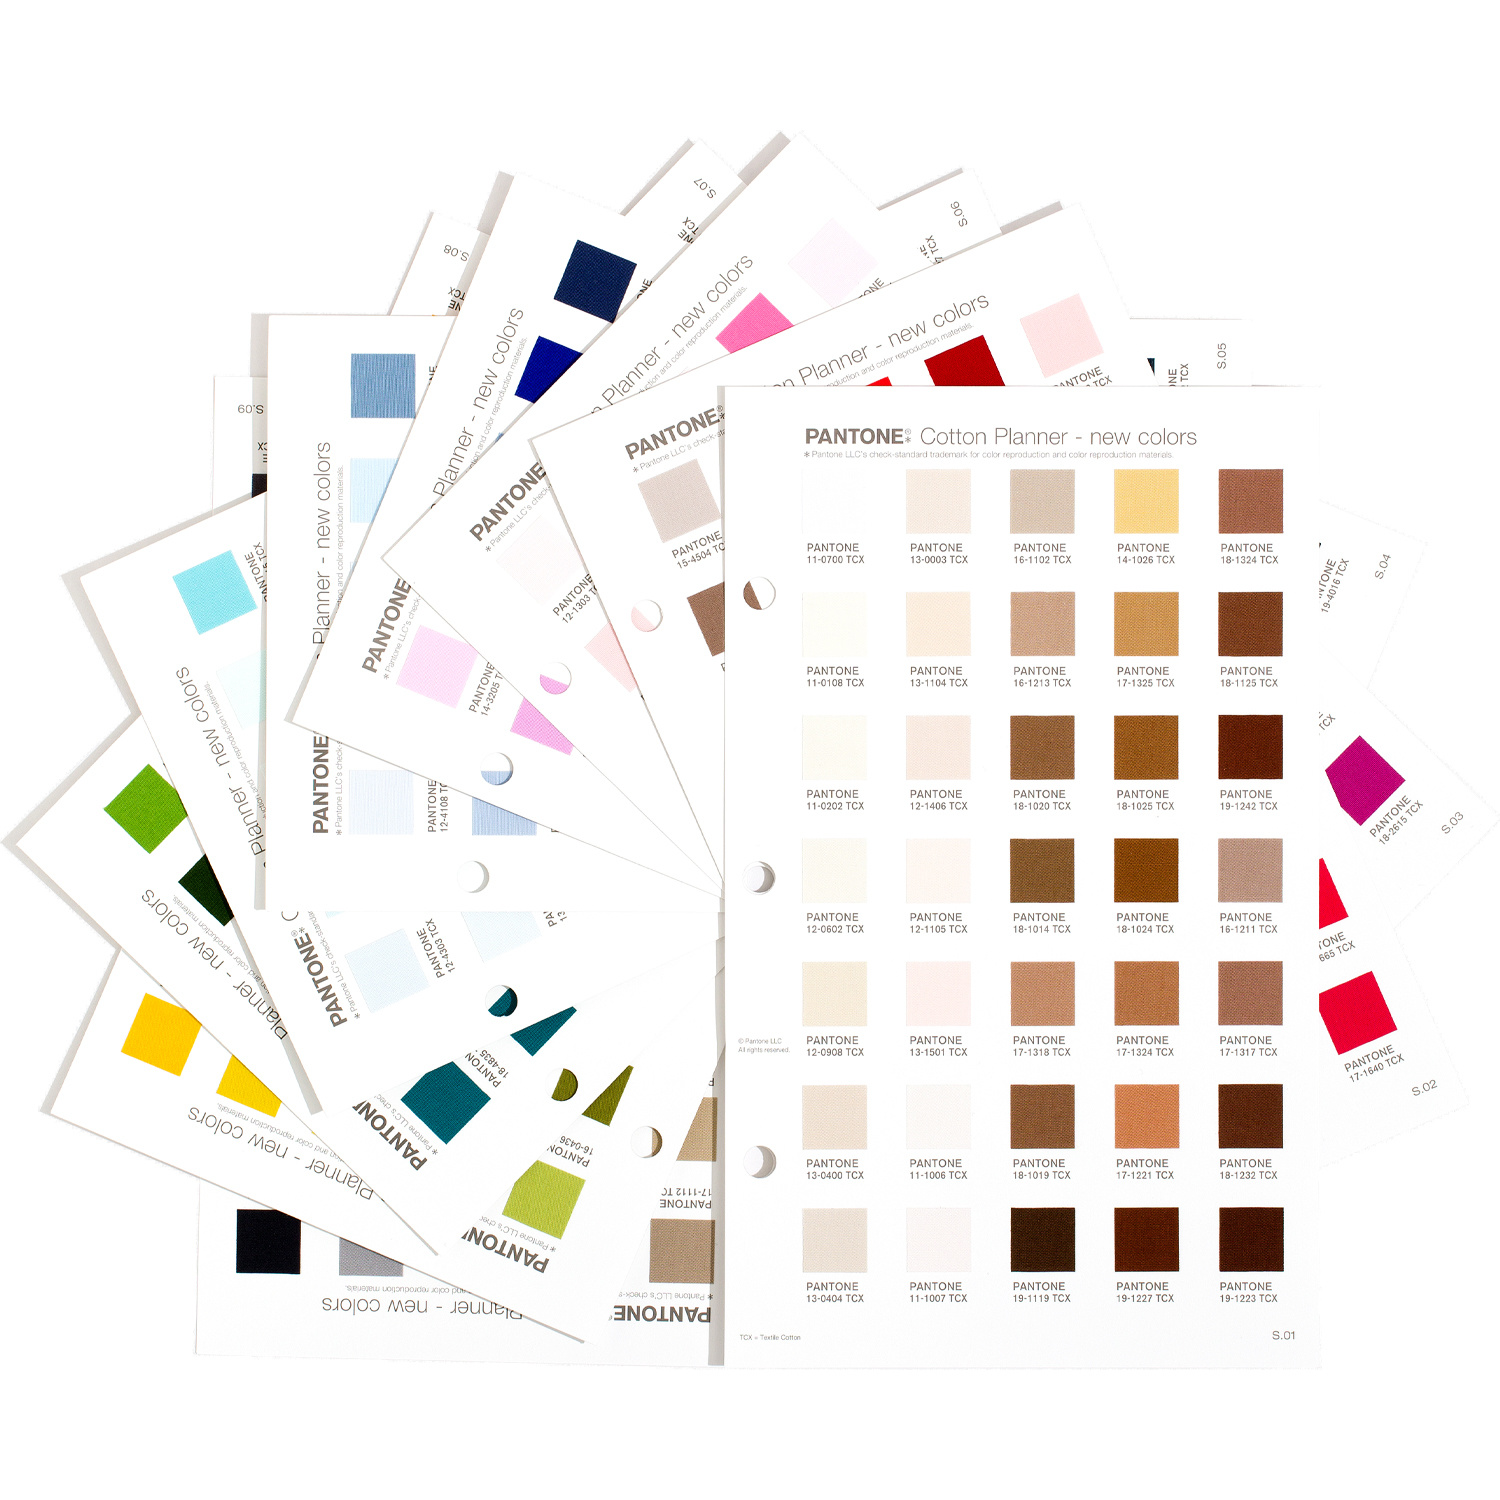 PANTONE PANTONE FHI Cotton Planner Supplement